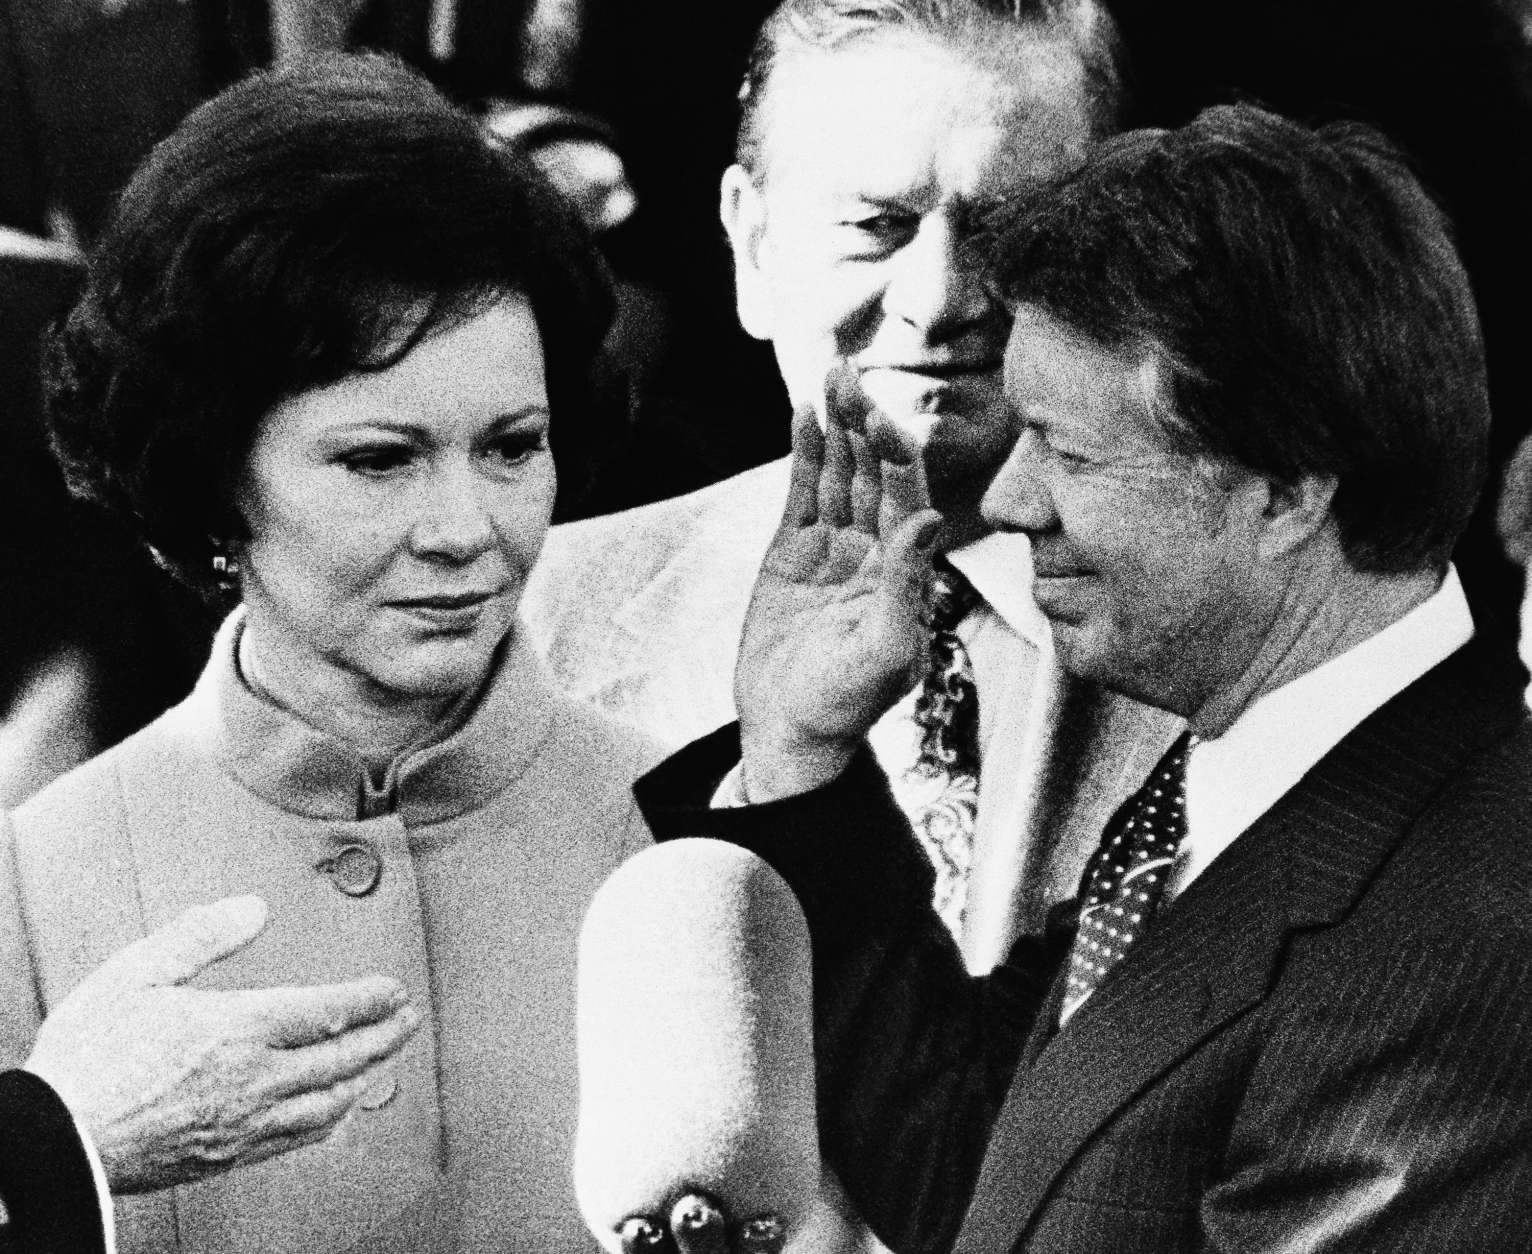 Rosalynn Carter, left, looks up at her husband Jimmy Carter as he takes the oath of office as the 39th President of the United States at the Capitol, Thursday, Jan. 20, 1977, Washington, D.C. Mrs. Carter held a family Bible for her husband. (AP Photo)